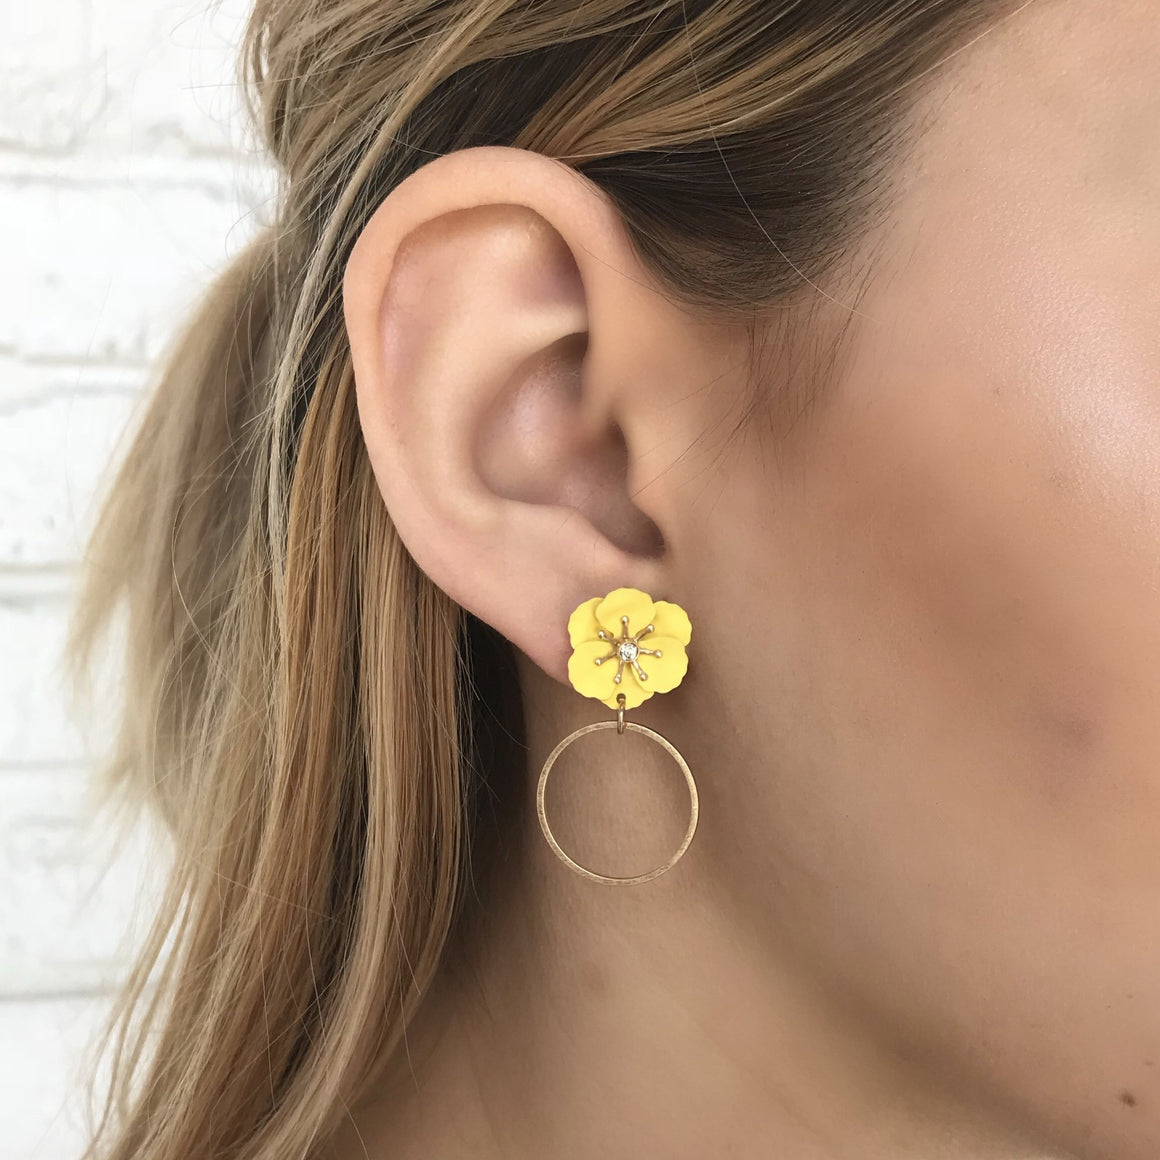 Yellow Daisy Earrings - Dainty Hooligan